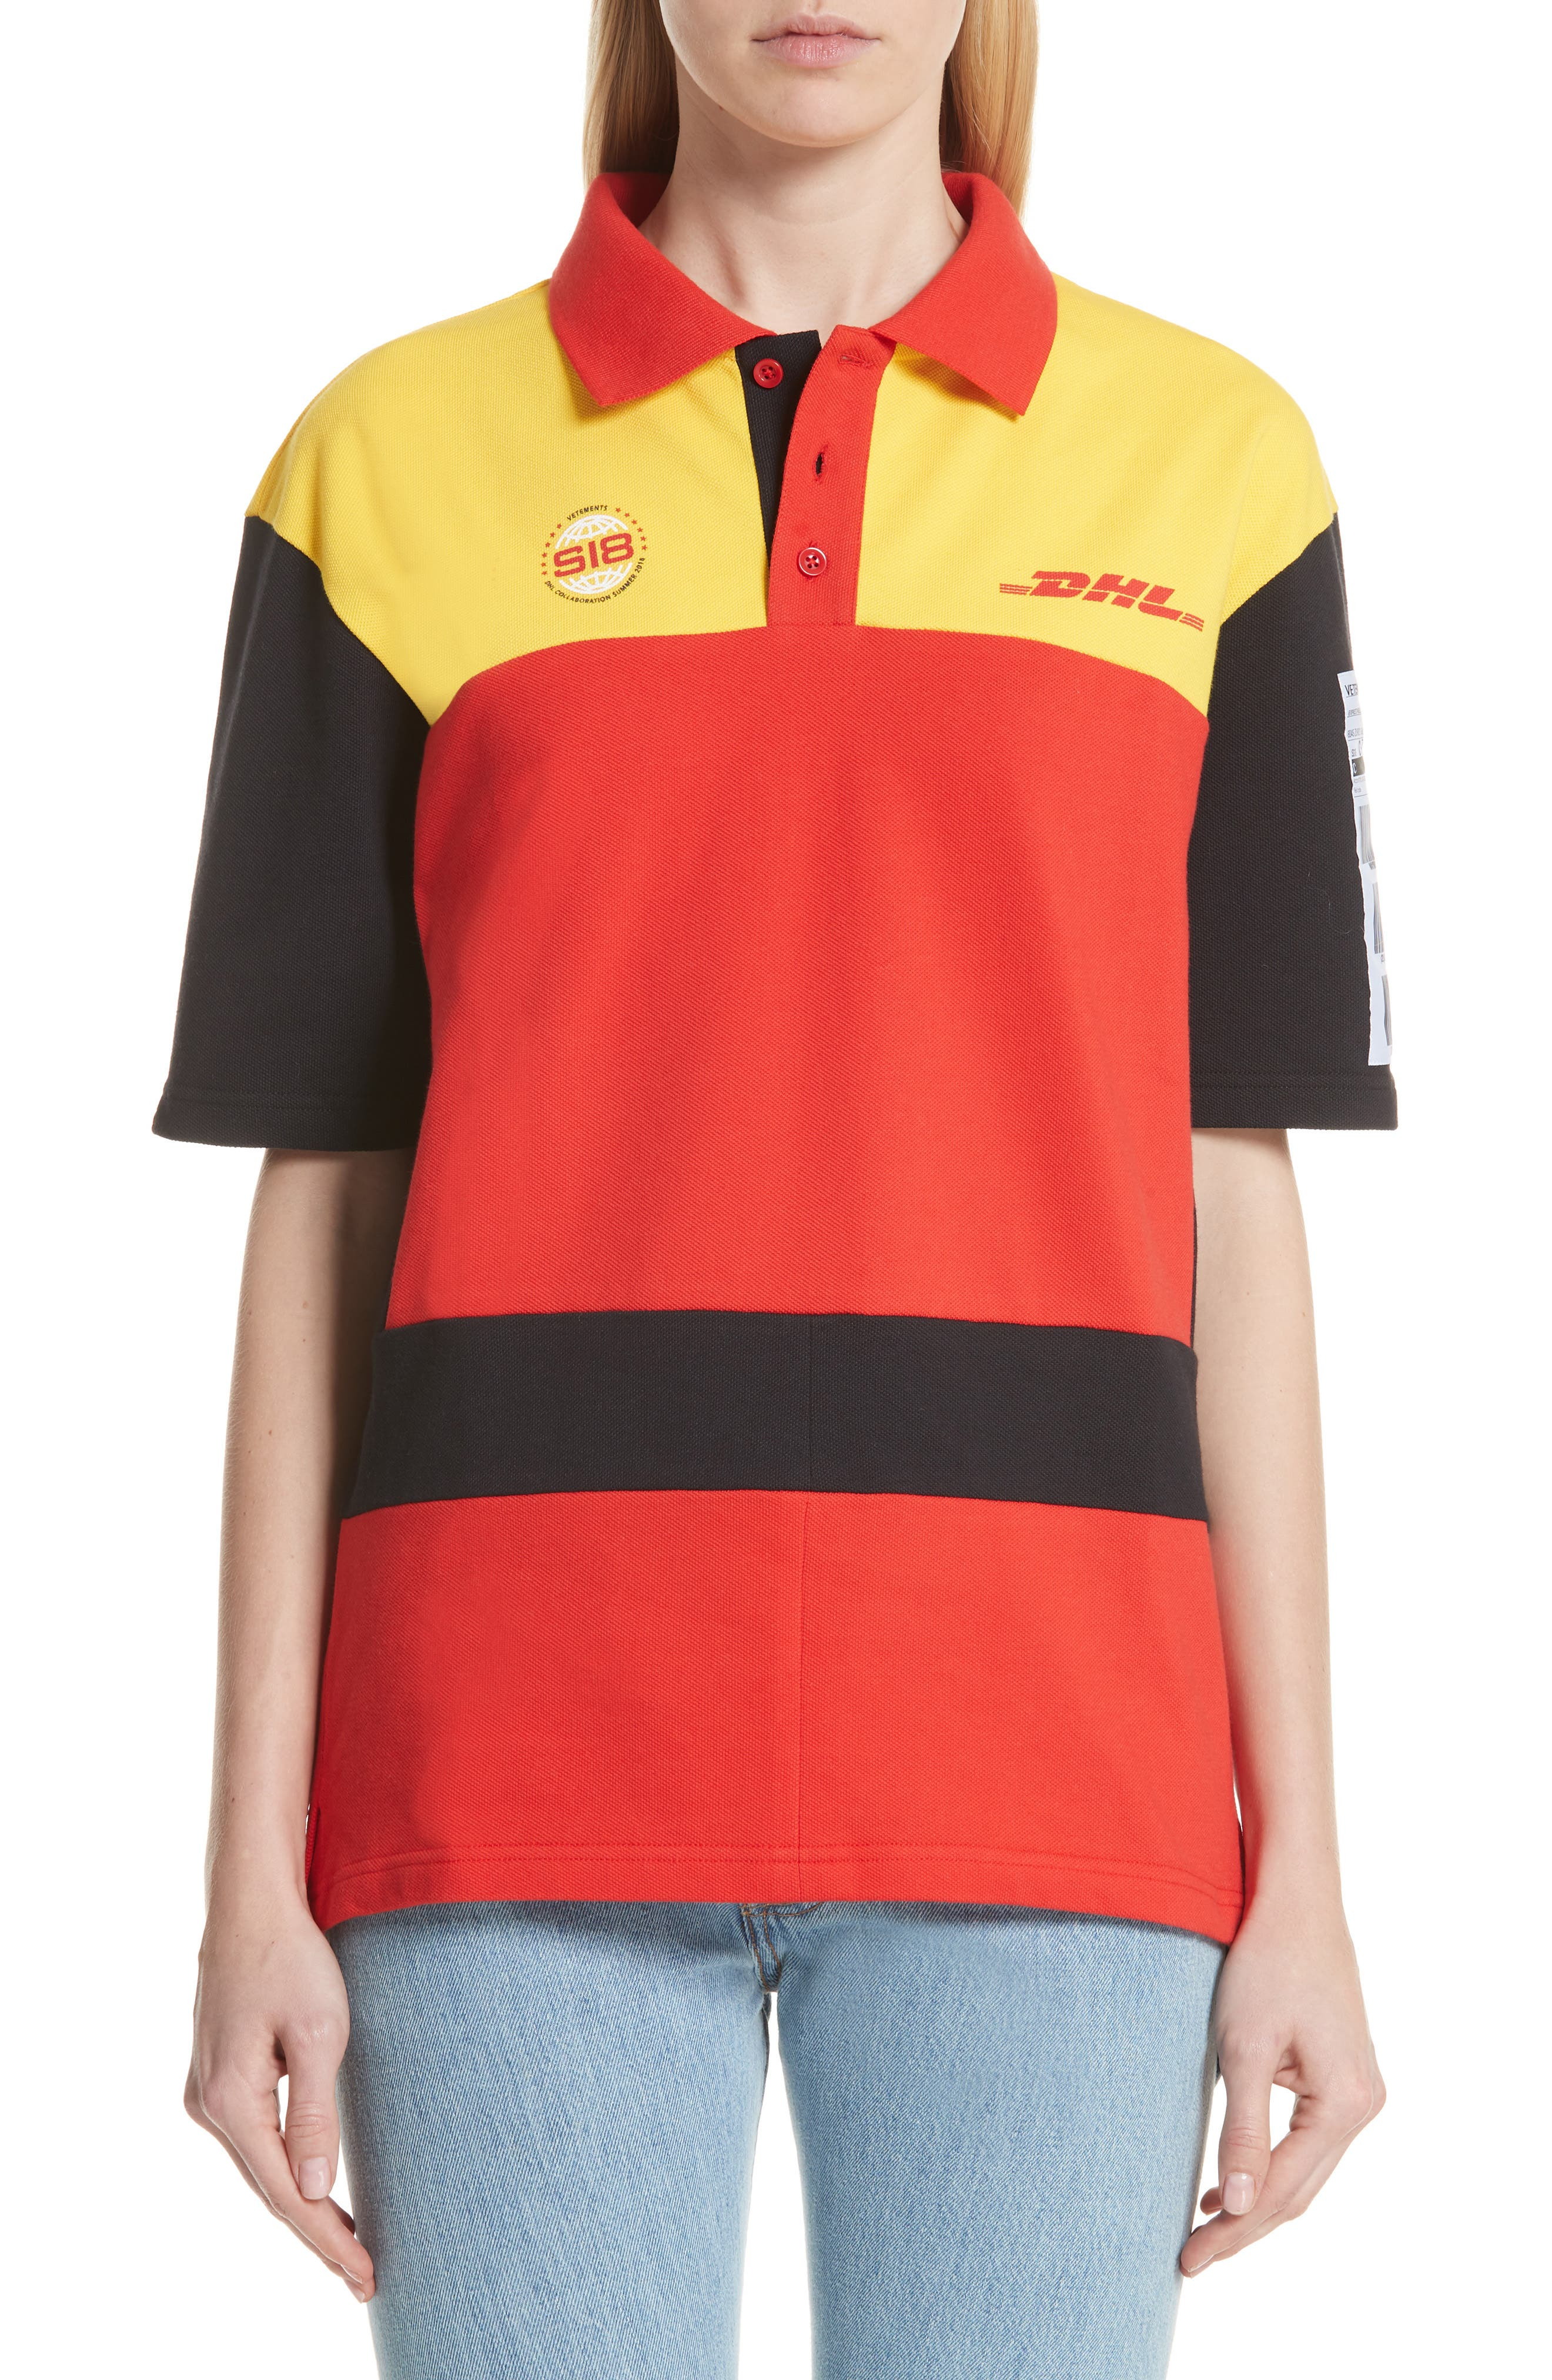 DHL Slim Fit Polo,                             Main thumbnail 1, color,                             Yellow